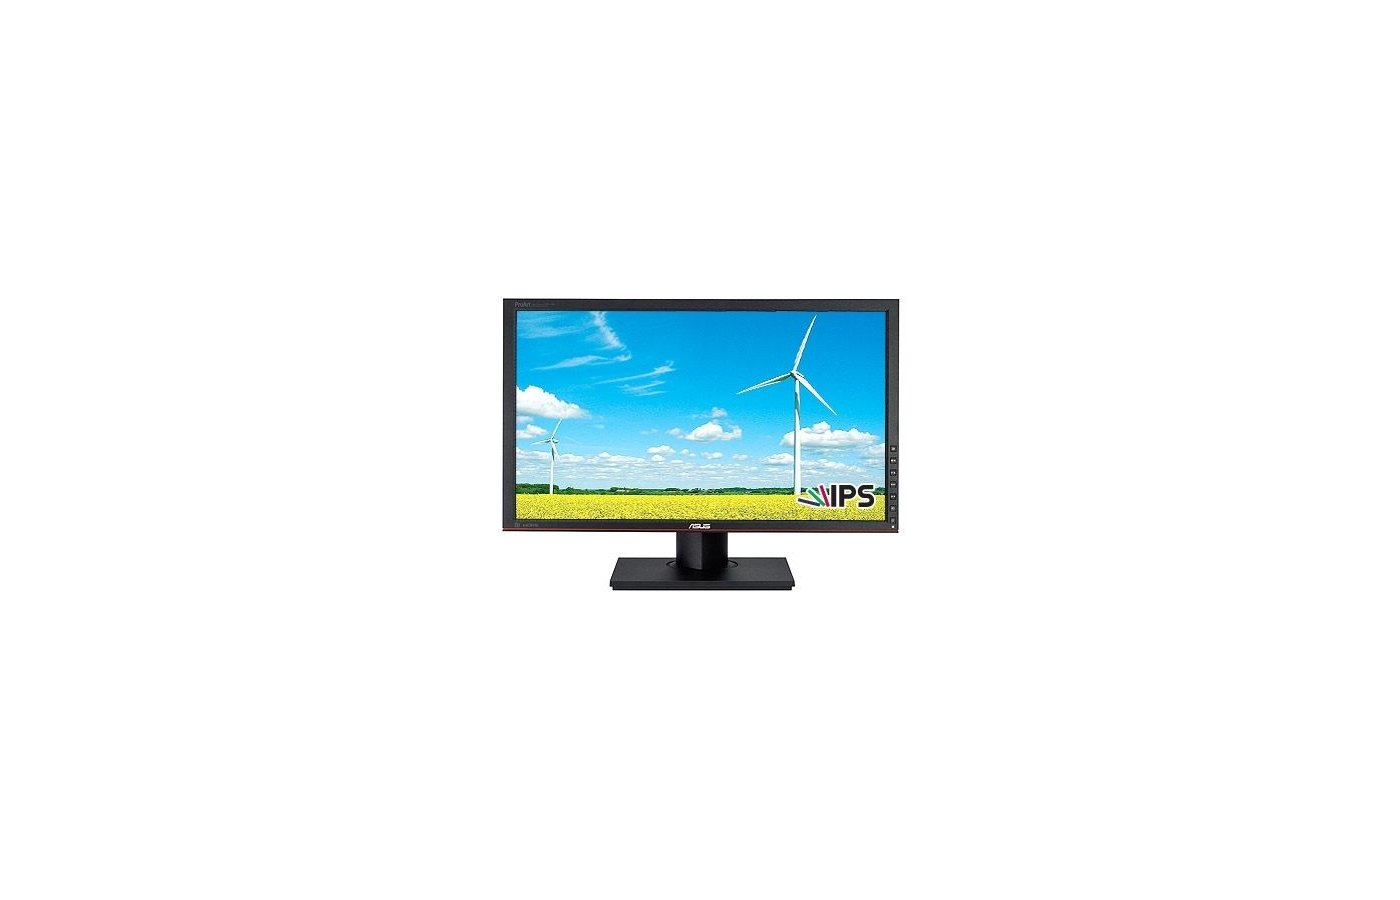 Монитор ASUS PA238Q Black IPS LED 6ms 16:9 DVI HDMI HAS Pivot 50M:1 250cd USB